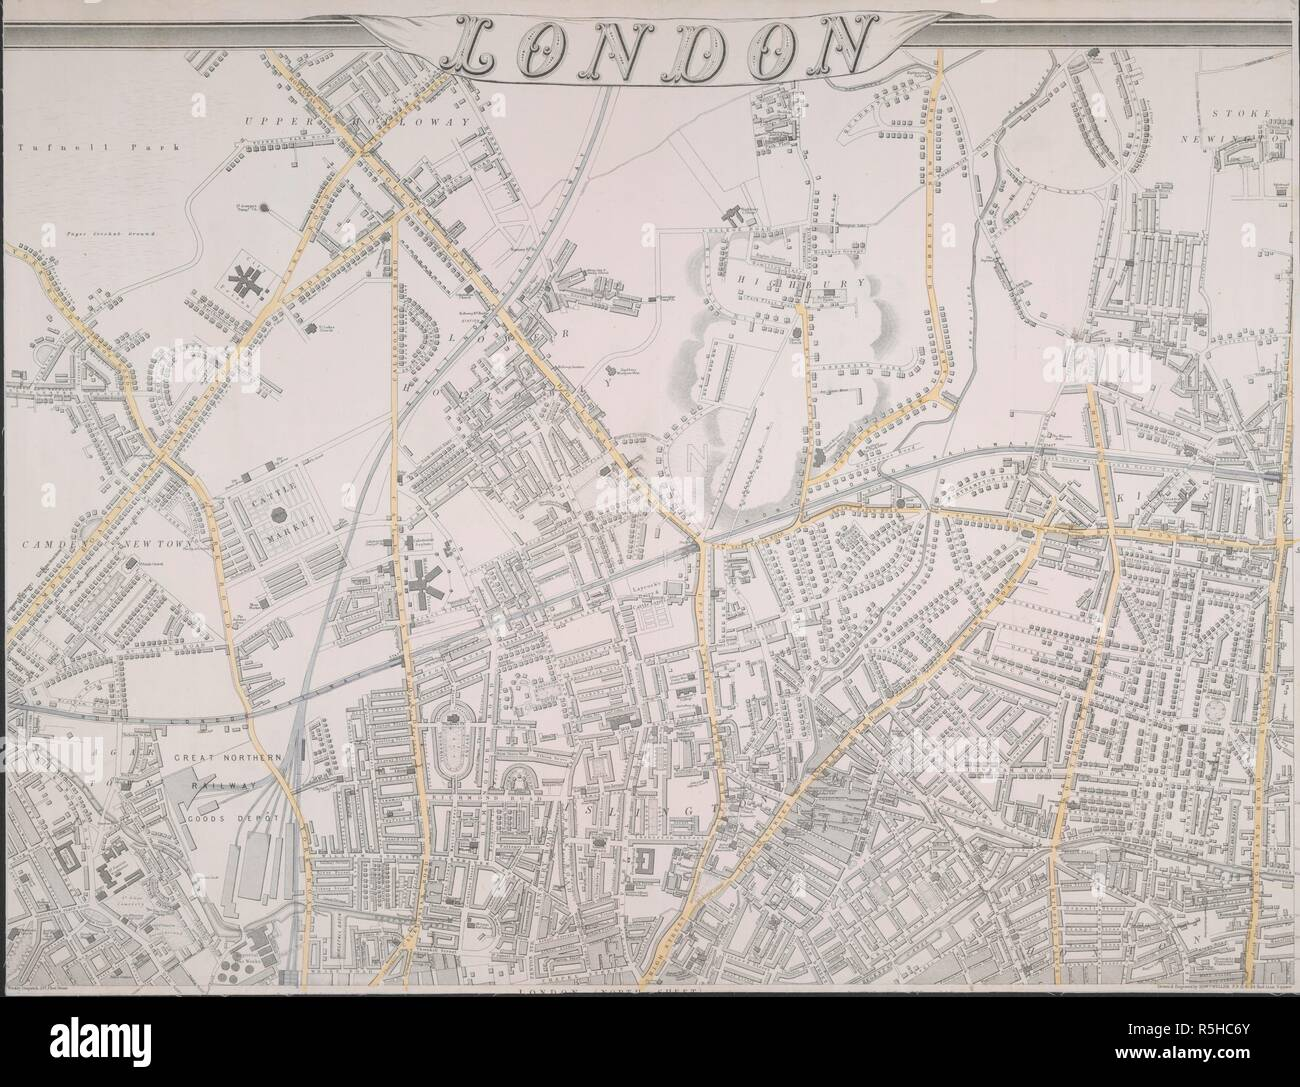 Street map of London covering Upper Hollloway, Stoke Newington, Highbury, Camden, Southgatre Road, and Hoxton. London / compiled and engraved by Edward Weller F. R.G. S., 34 Red Lion Square. London : published by Cassell, Peter, & Calpin, Belle Sauvage Yard, Ludgate Hill, E. C., [1861-63]. Source: Maps Crace Port.7.271 part A. Author: Cassell, Petter & Galpin. - Stock Image